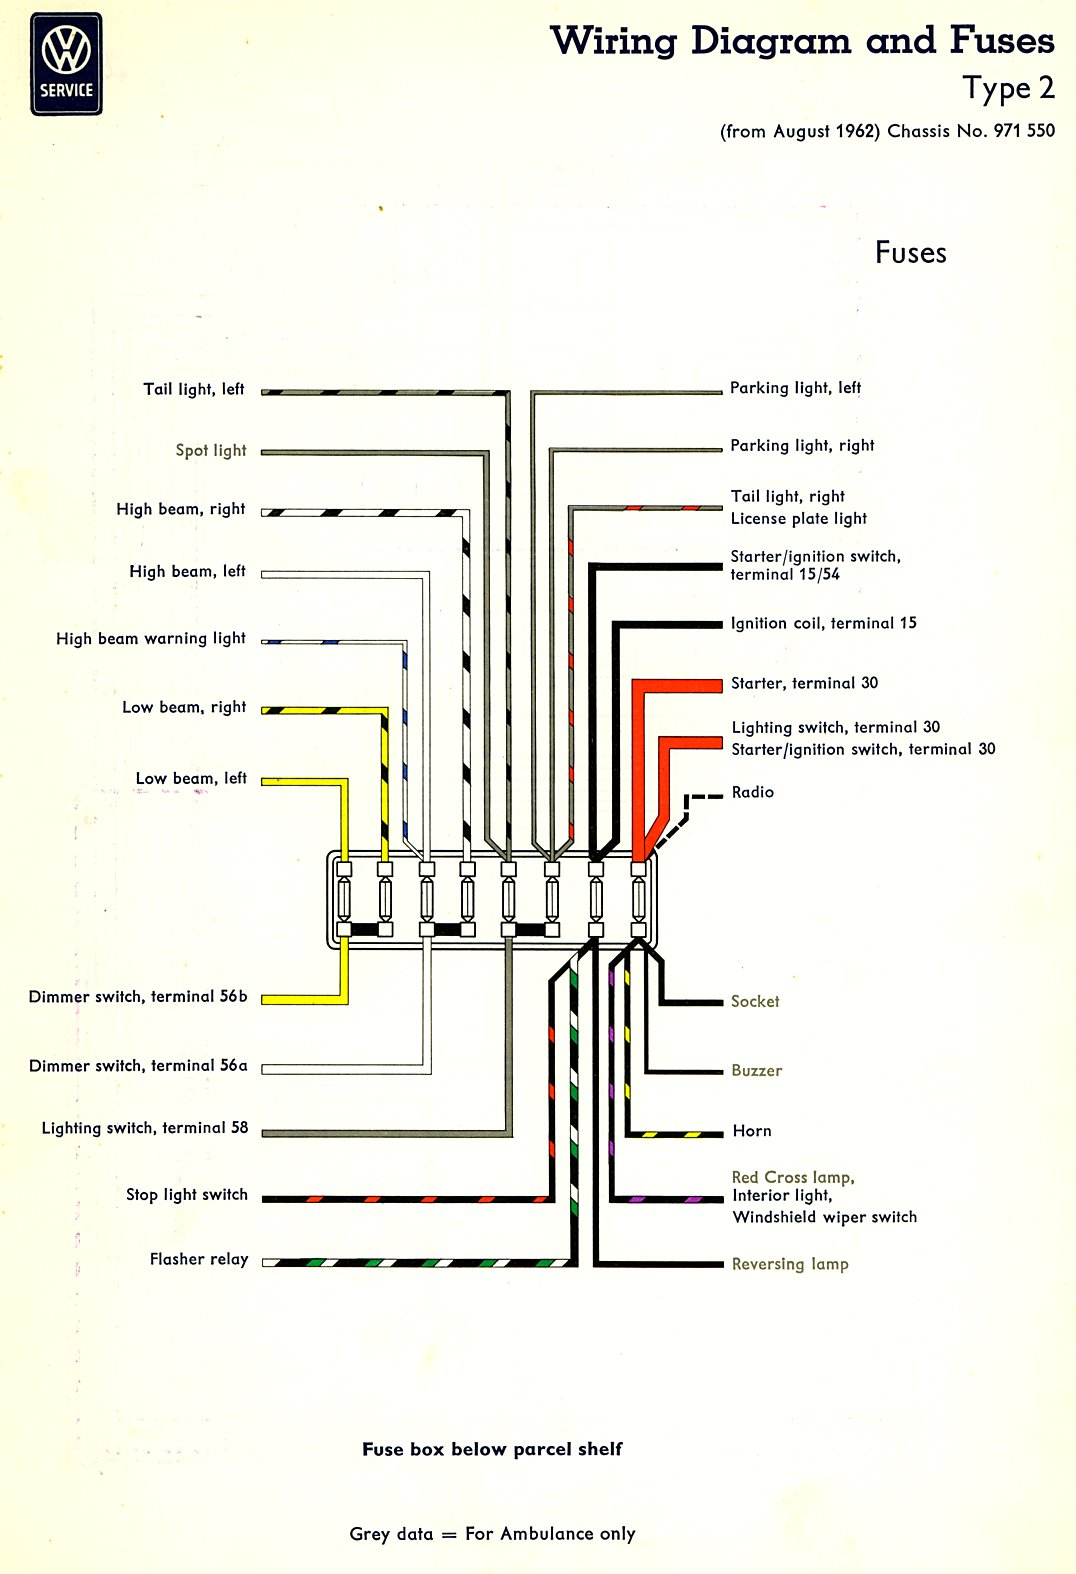 bus_63_fuses thesamba com type 2 wiring diagrams 1963 vw wiring diagram at alyssarenee.co